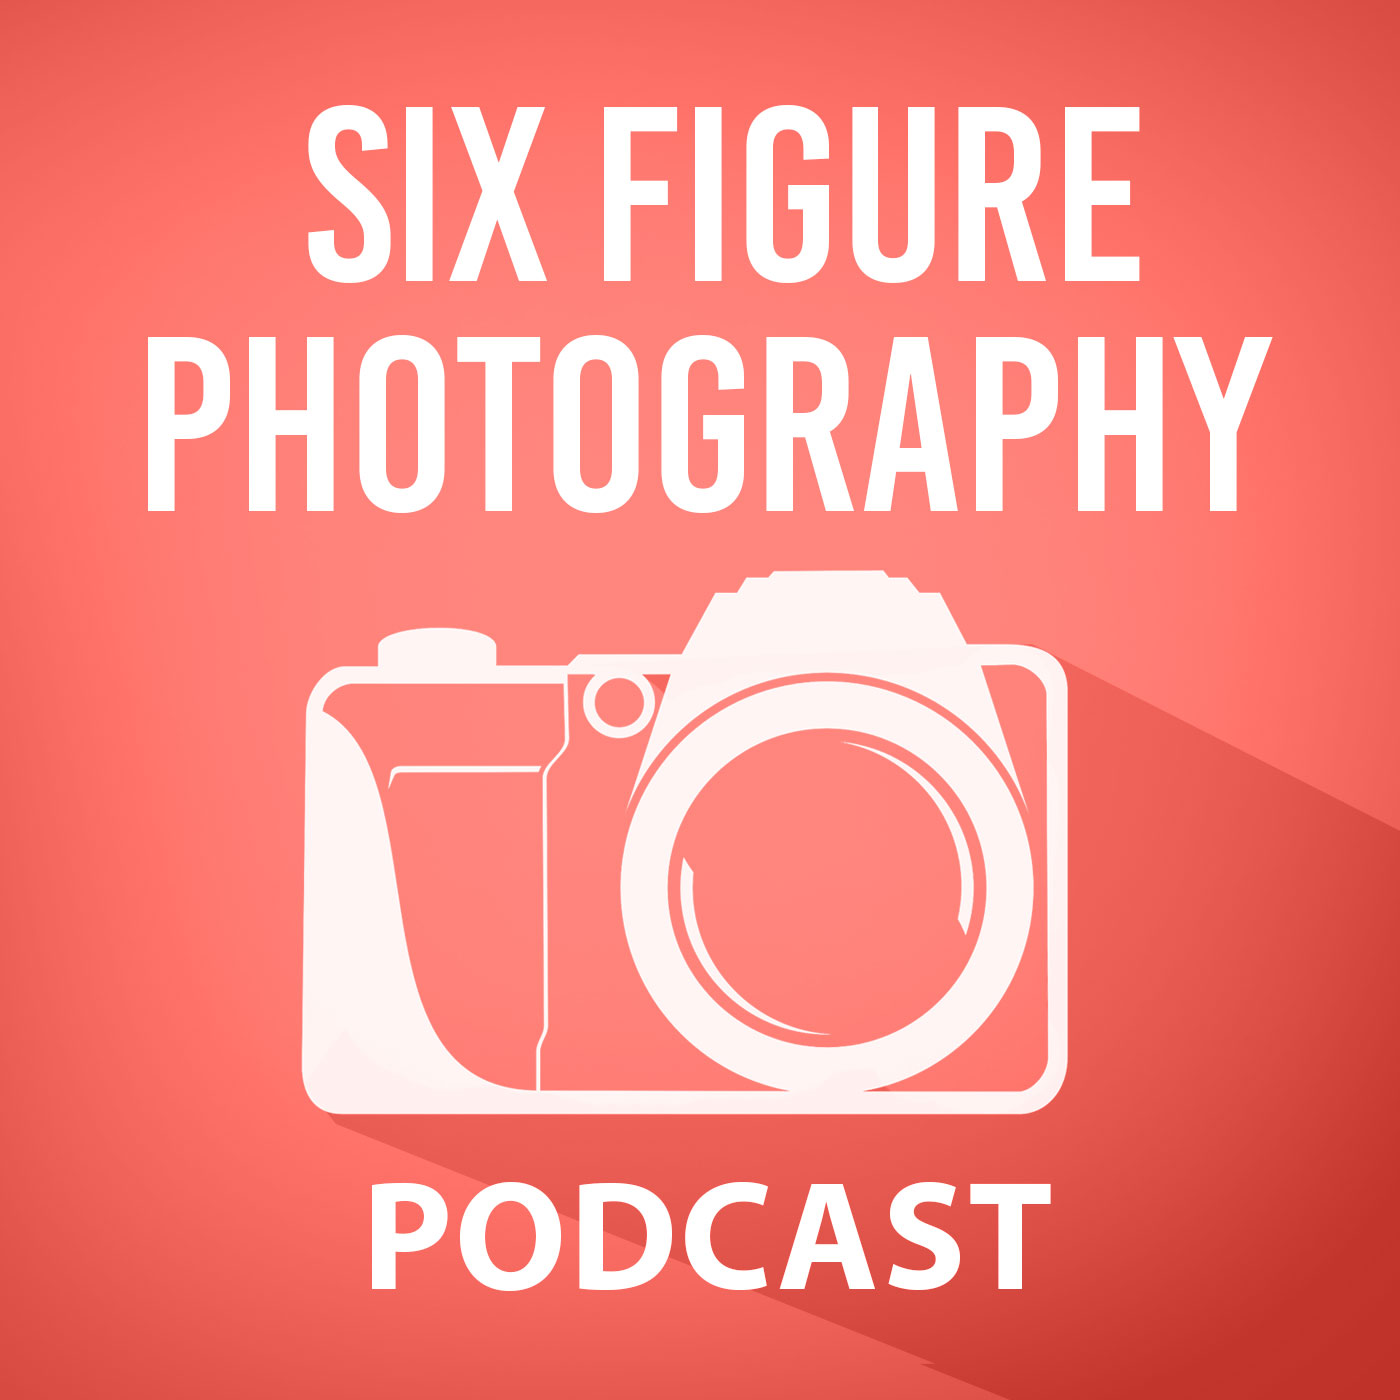 Six Figure Photography Podcast